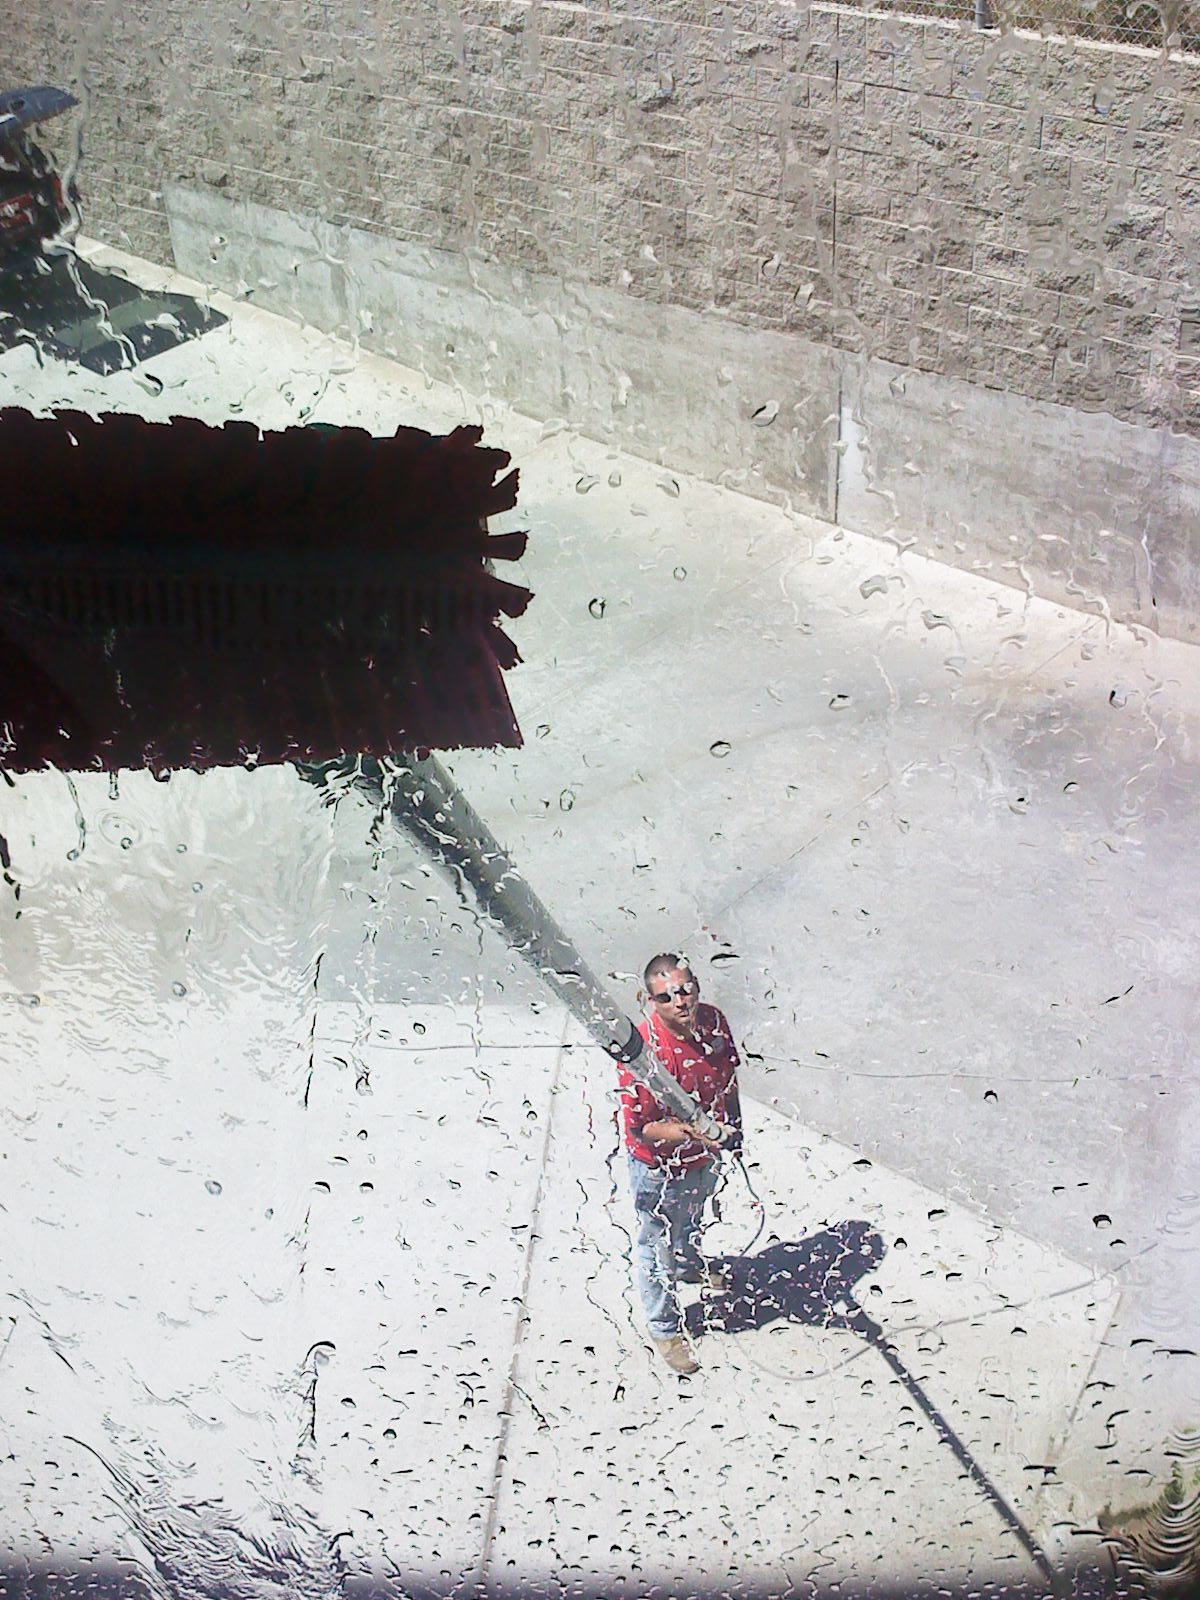 Over the years, cleaning windows using the water fed pole has become very popular. Since then, the water fed pole has become the new way when it comes to washing